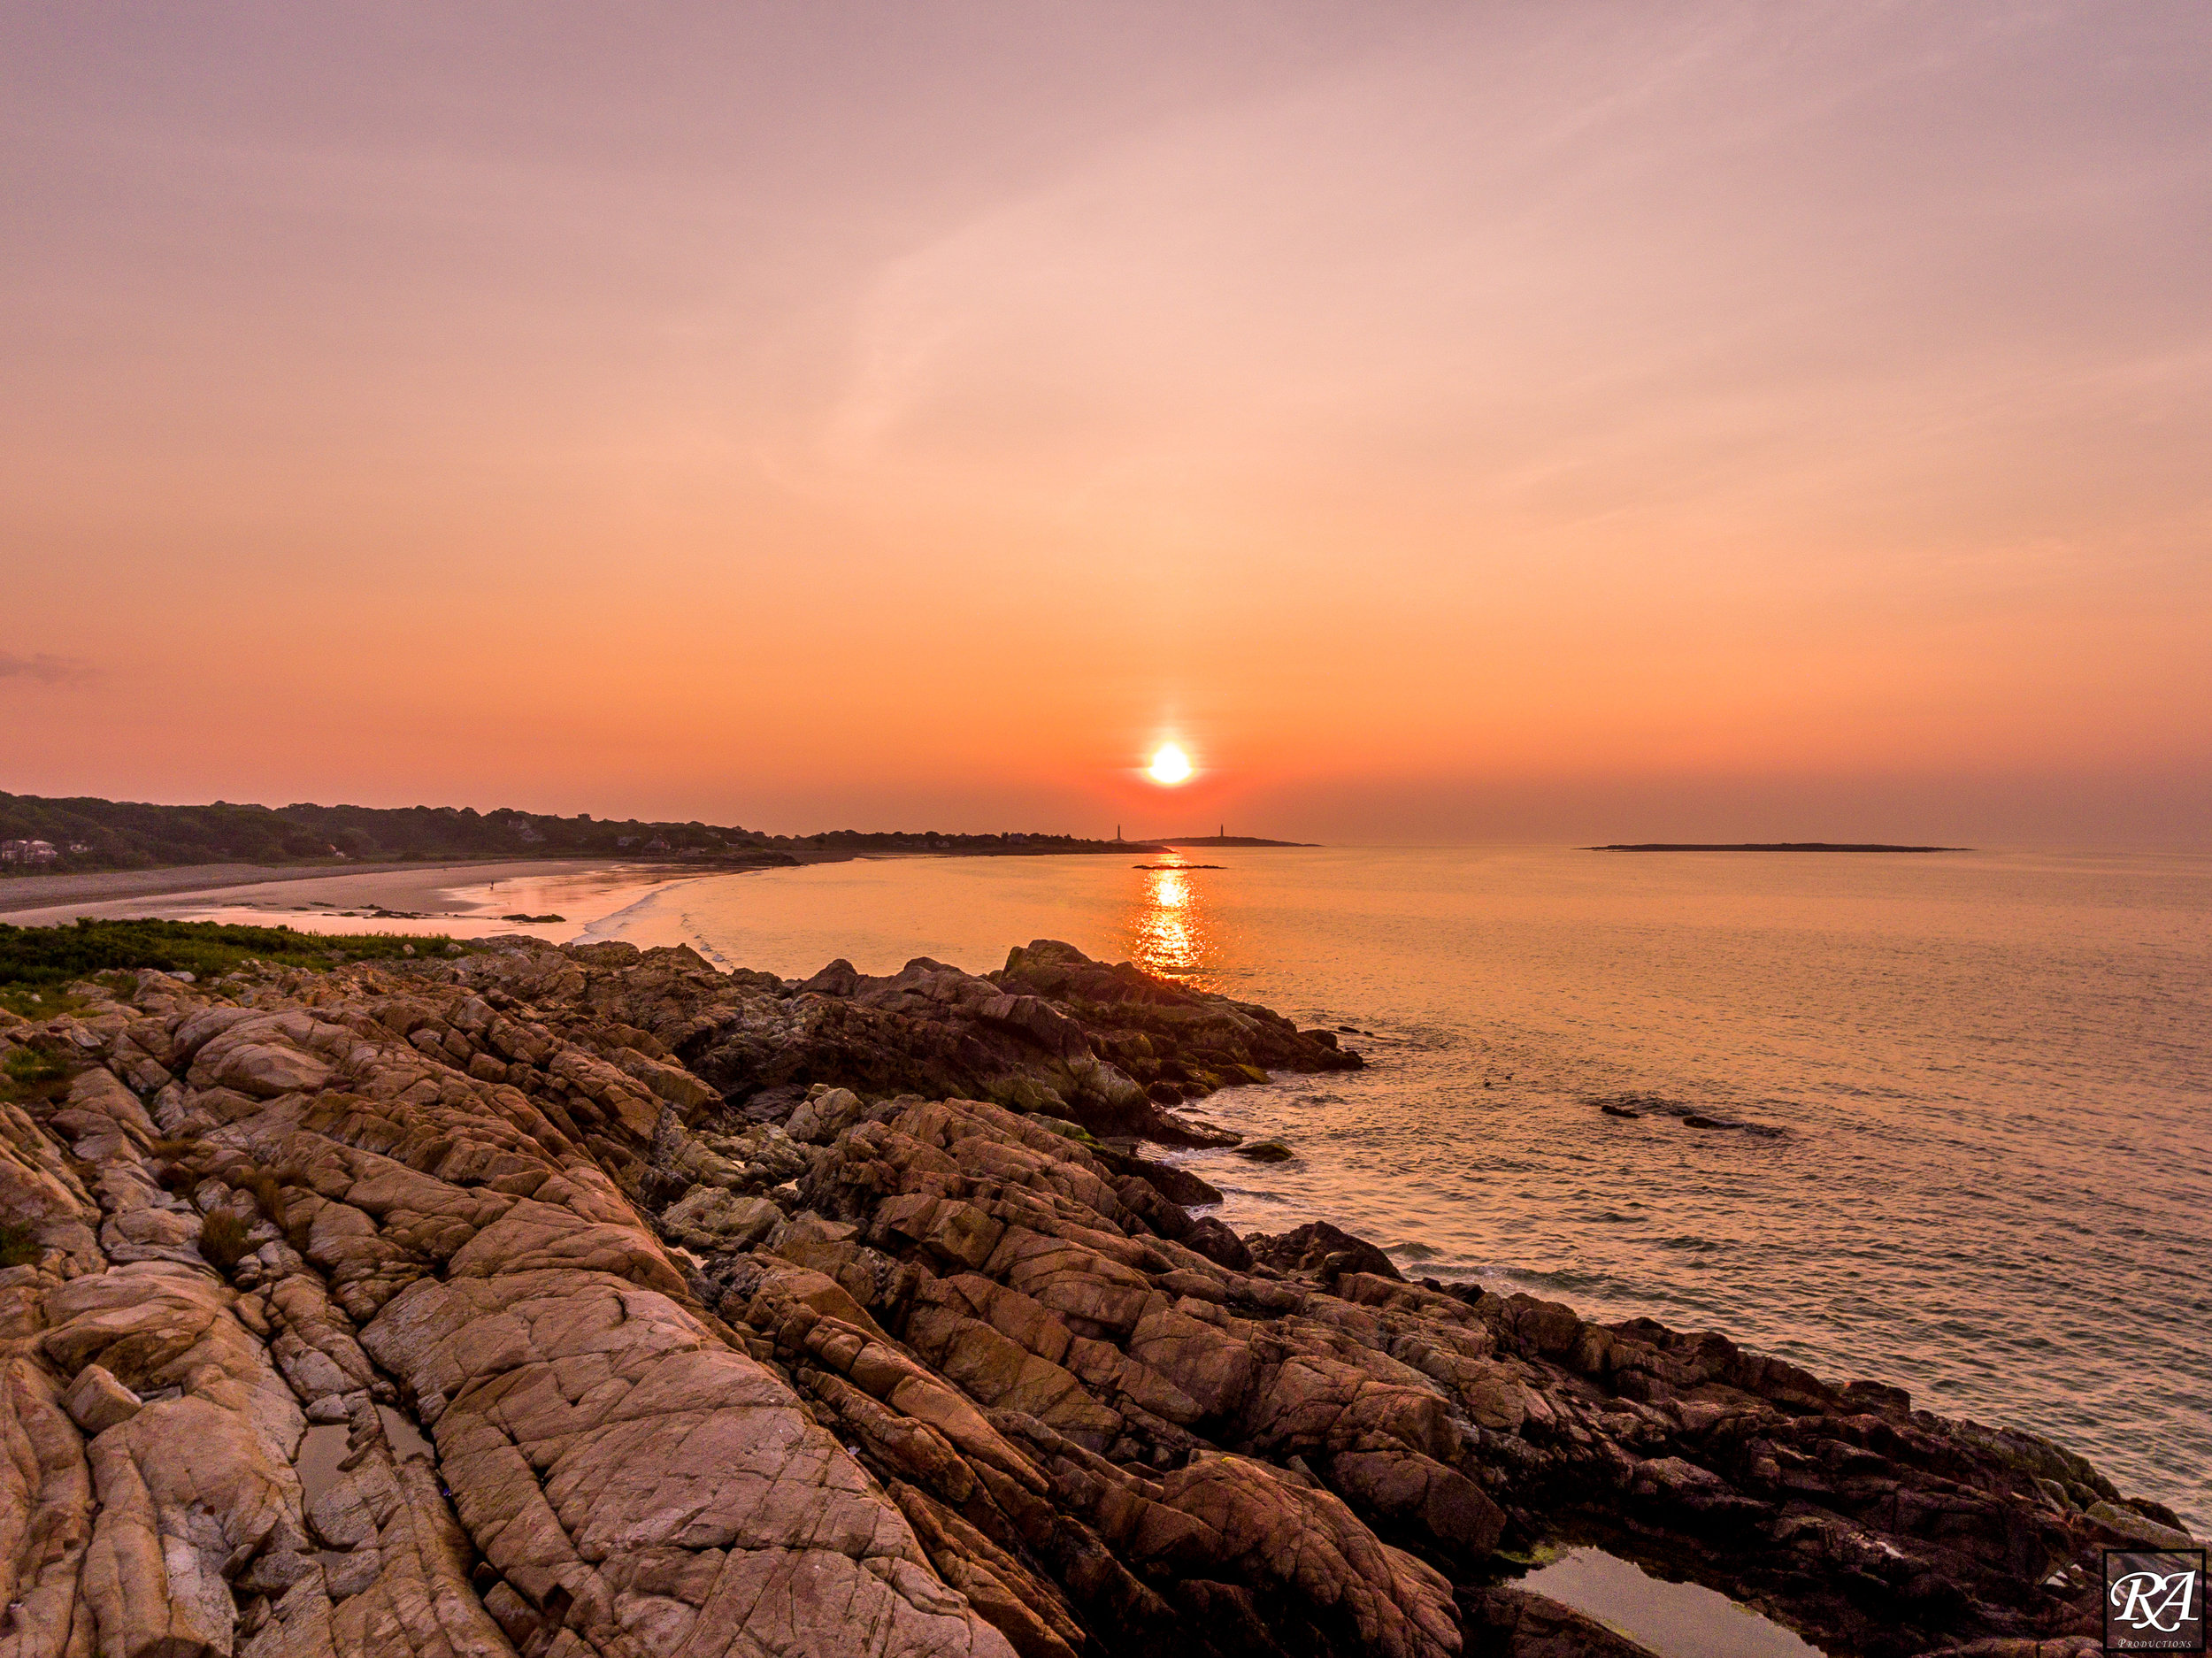 082217_sunrise_rockport-9.jpg